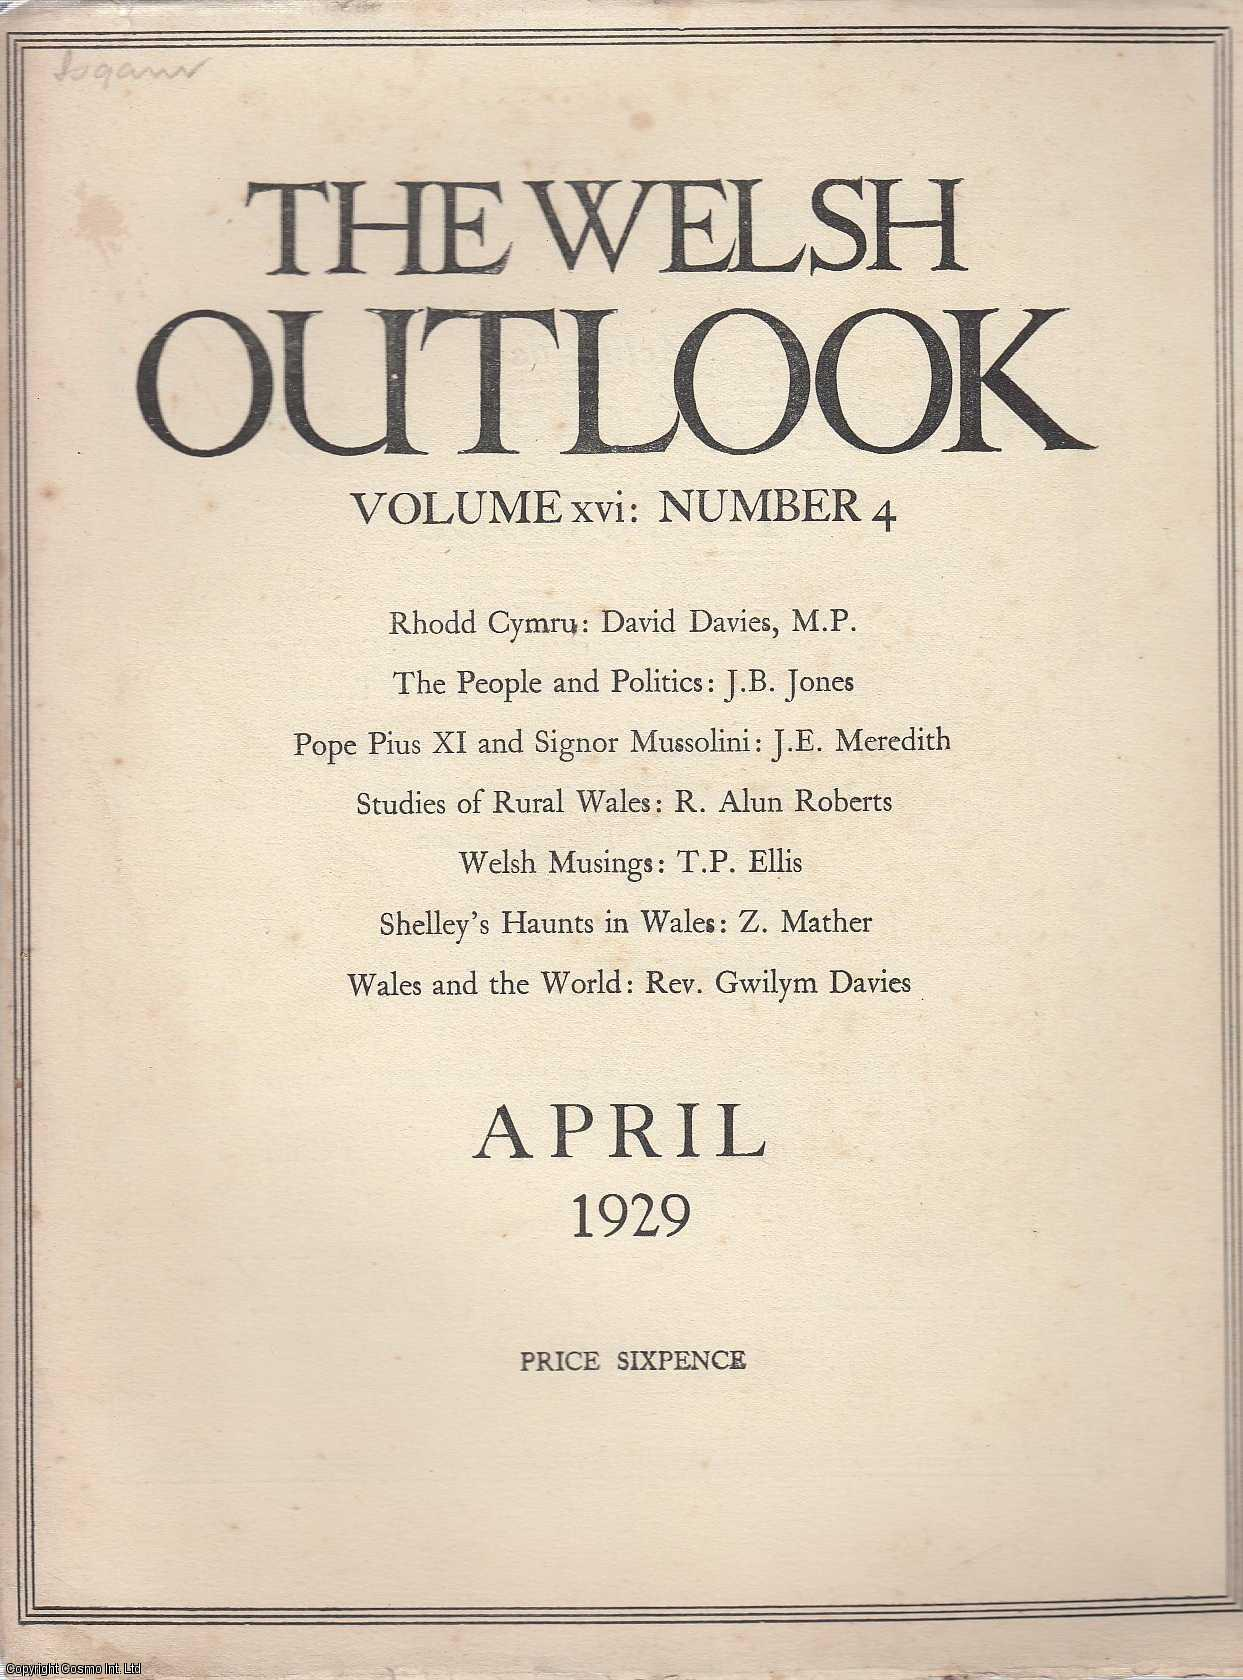 The Welsh Outlook. A Monthly Journal of National Social Progress. April, 1929. Contains; Rhodd Cymru: The Presentation Address by Mr. David Davies; The People and Politics by J.B. Jones; Pope Pius XI and Signor Mussolini by J.E. Meredith; Studies of Rural Wales by R. Alun Roberts; A Welsh Bishop and an English College by Rev. David Crowley; Welsh Musings by T.P. Ellis; Sanctuary by George M. Ll. Davies; At The Sign of The Blue Lion by F.L. Lowther; Shelley's Haunts in Wales by Z. Mather; The Welsh League of Nations Union; Wales and The World by Rev. Gwilym Davies., Thomas Jones (Editor)